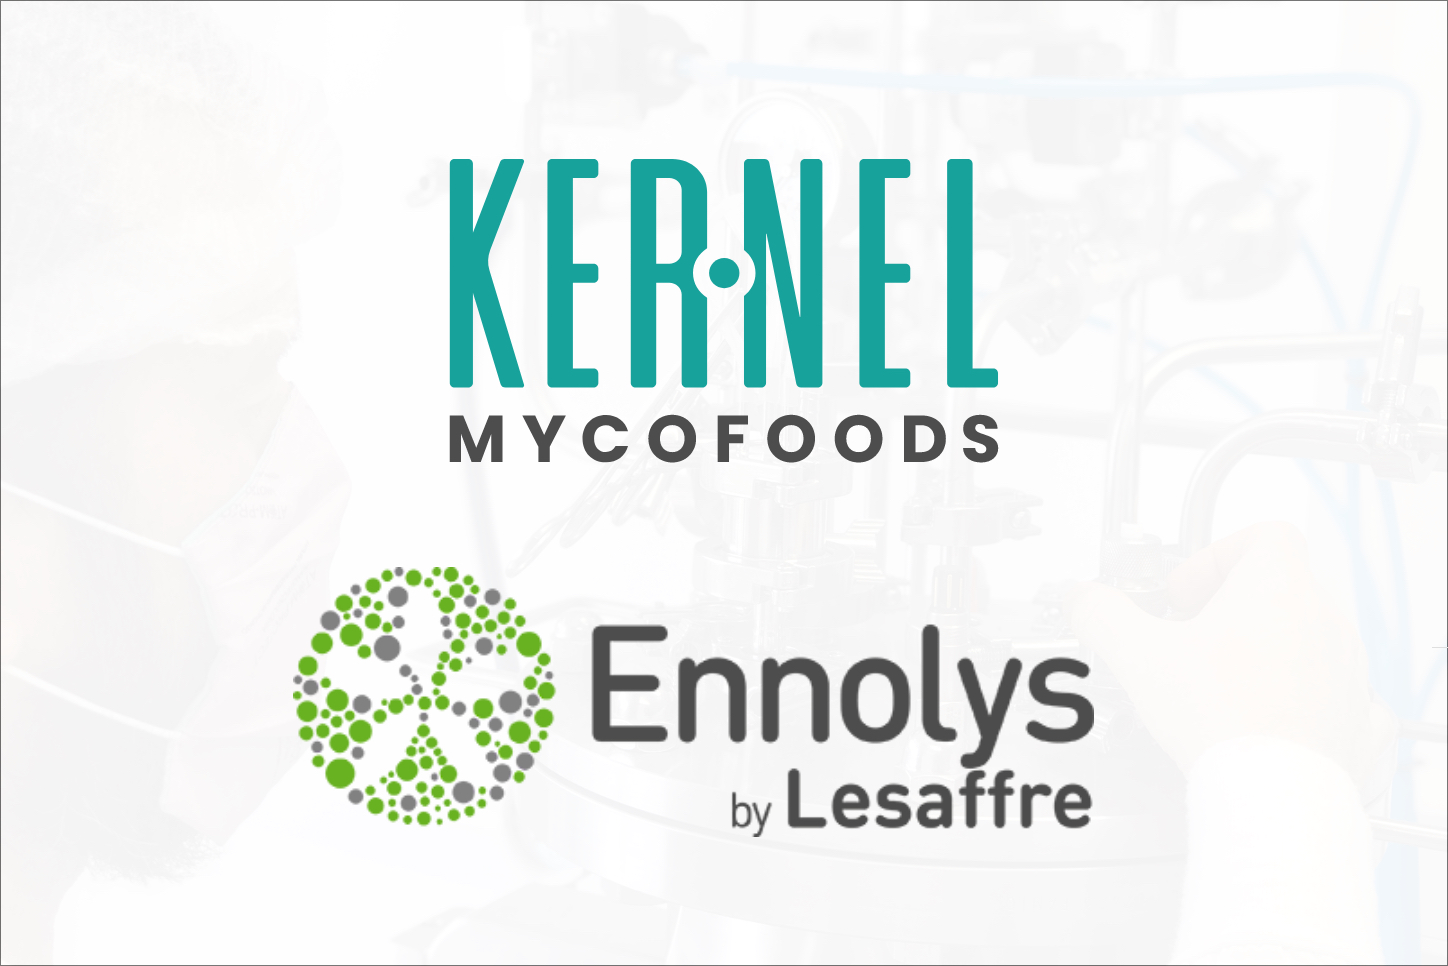 Kernel Mycofoods will start working with Ennolys to bring alternative protein to the market within the year